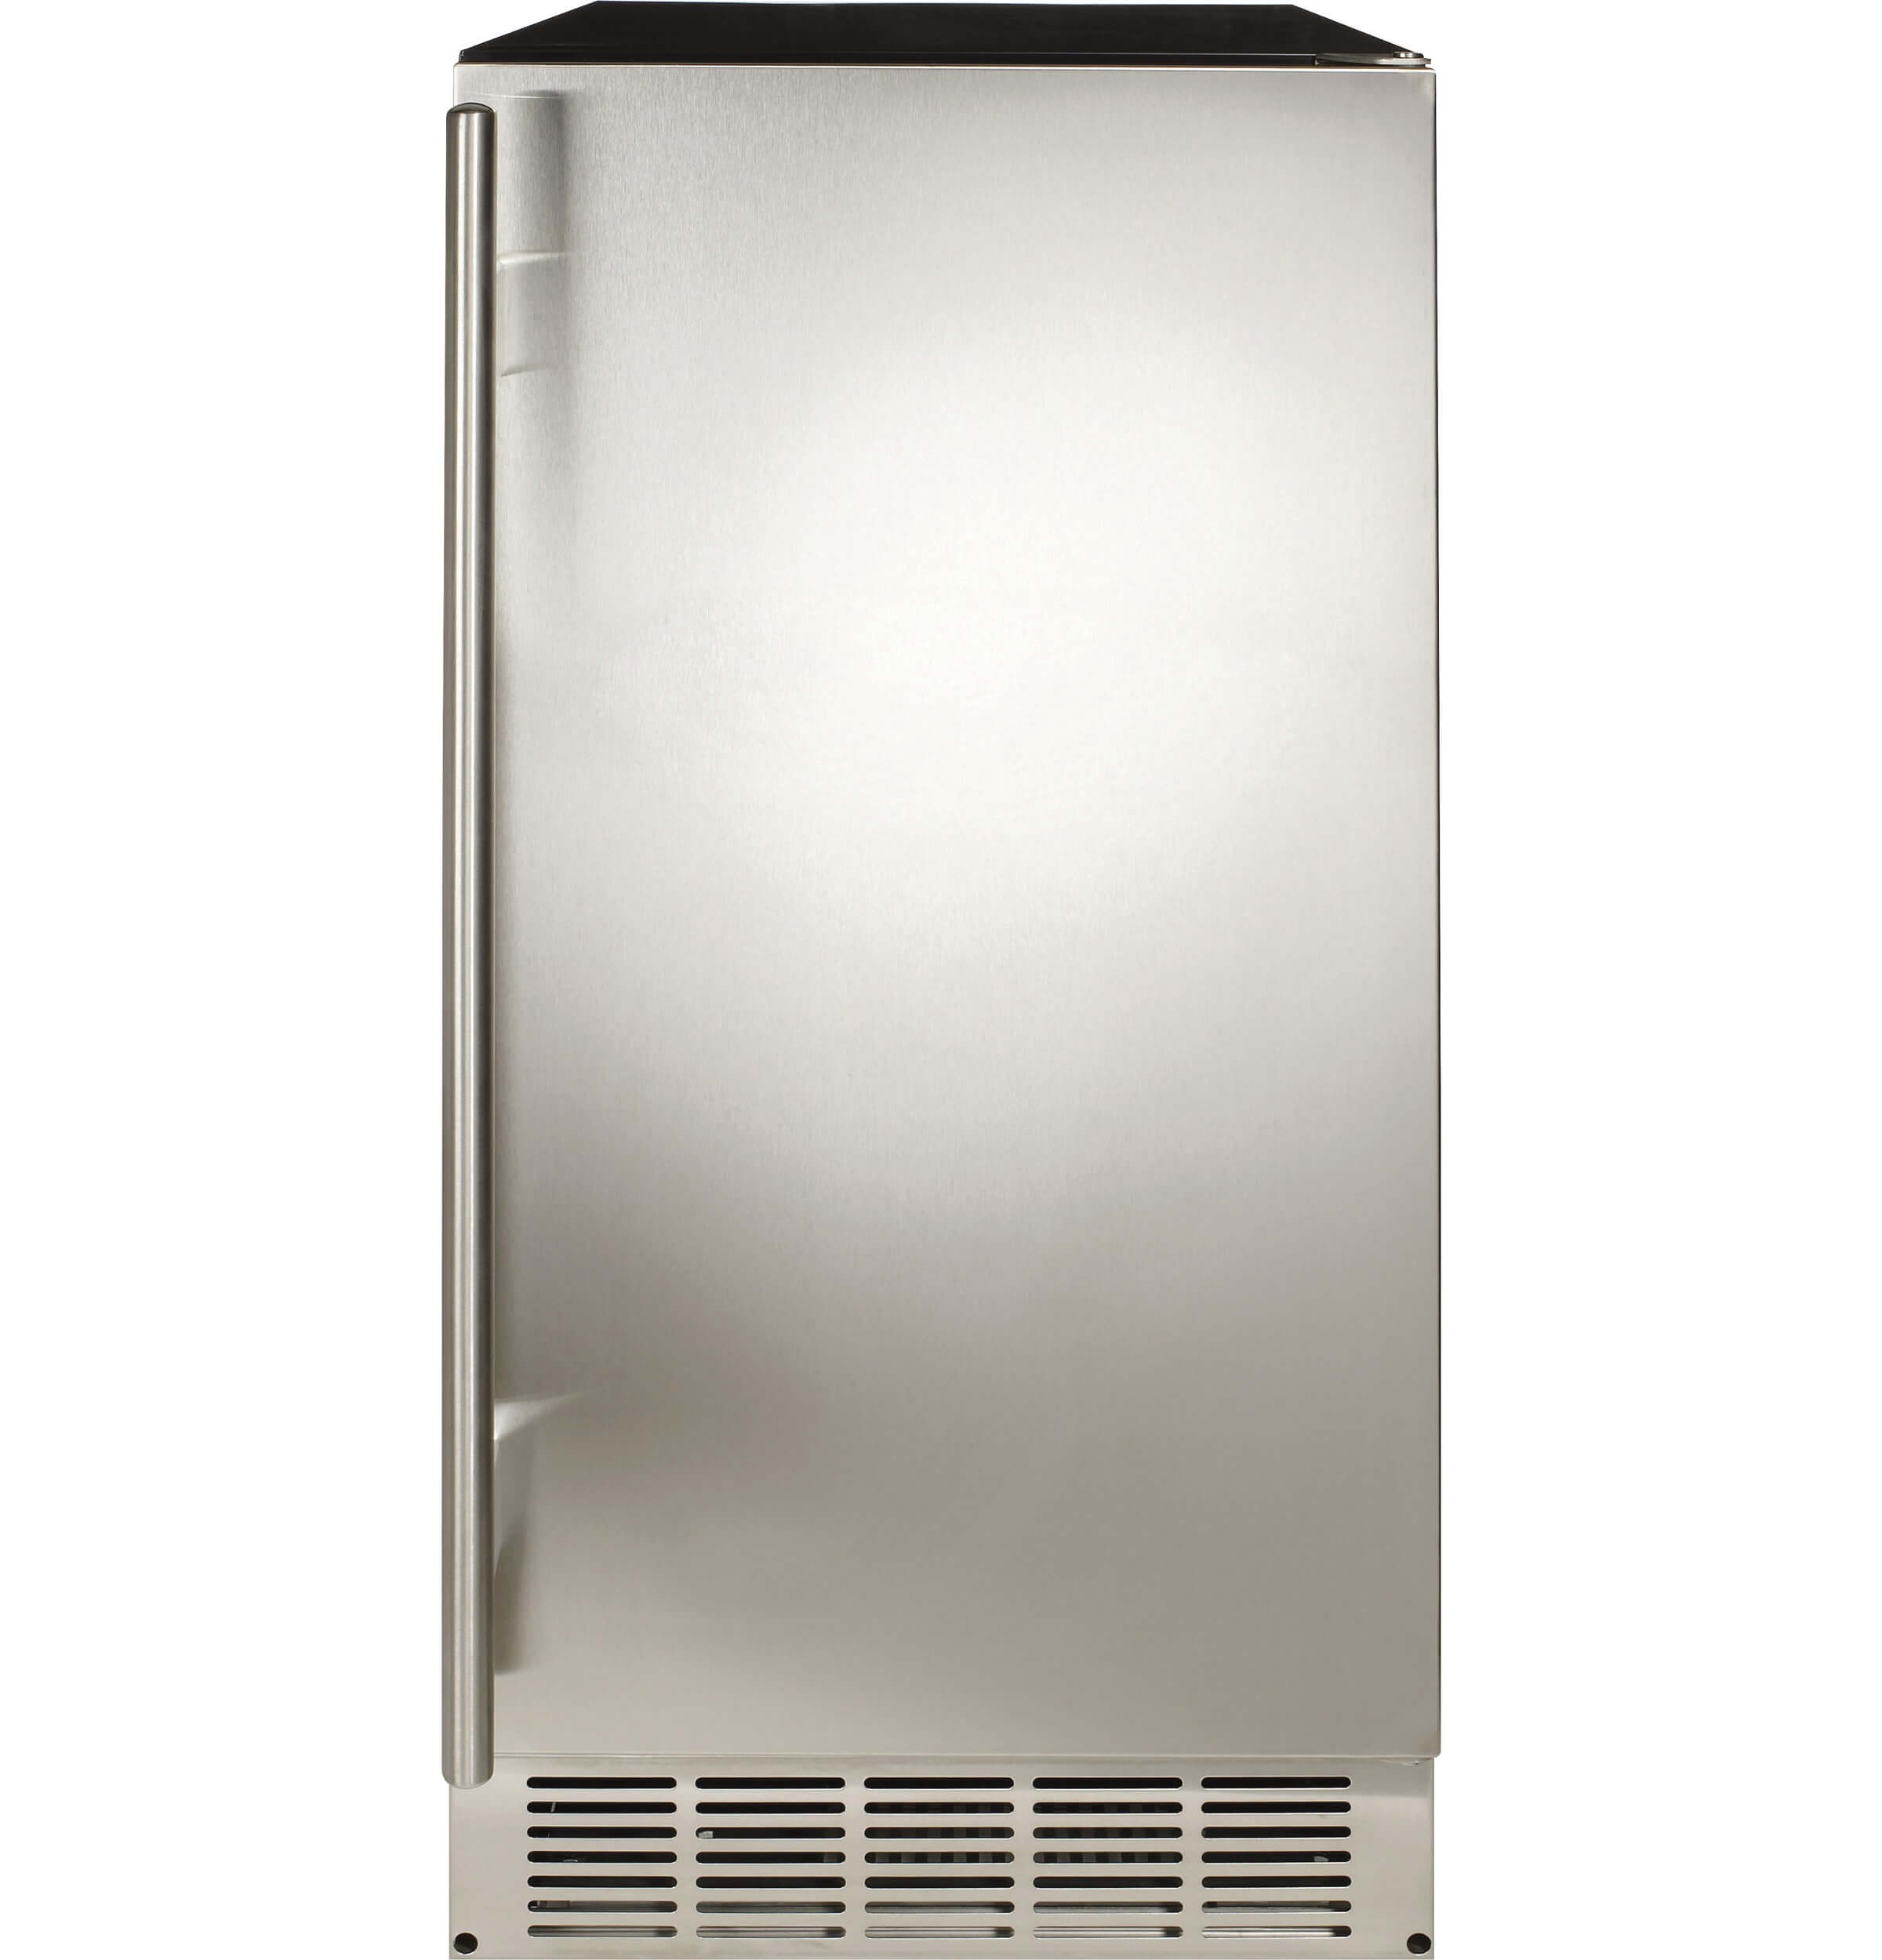 15 inch Stainless Built-In Ice Maker